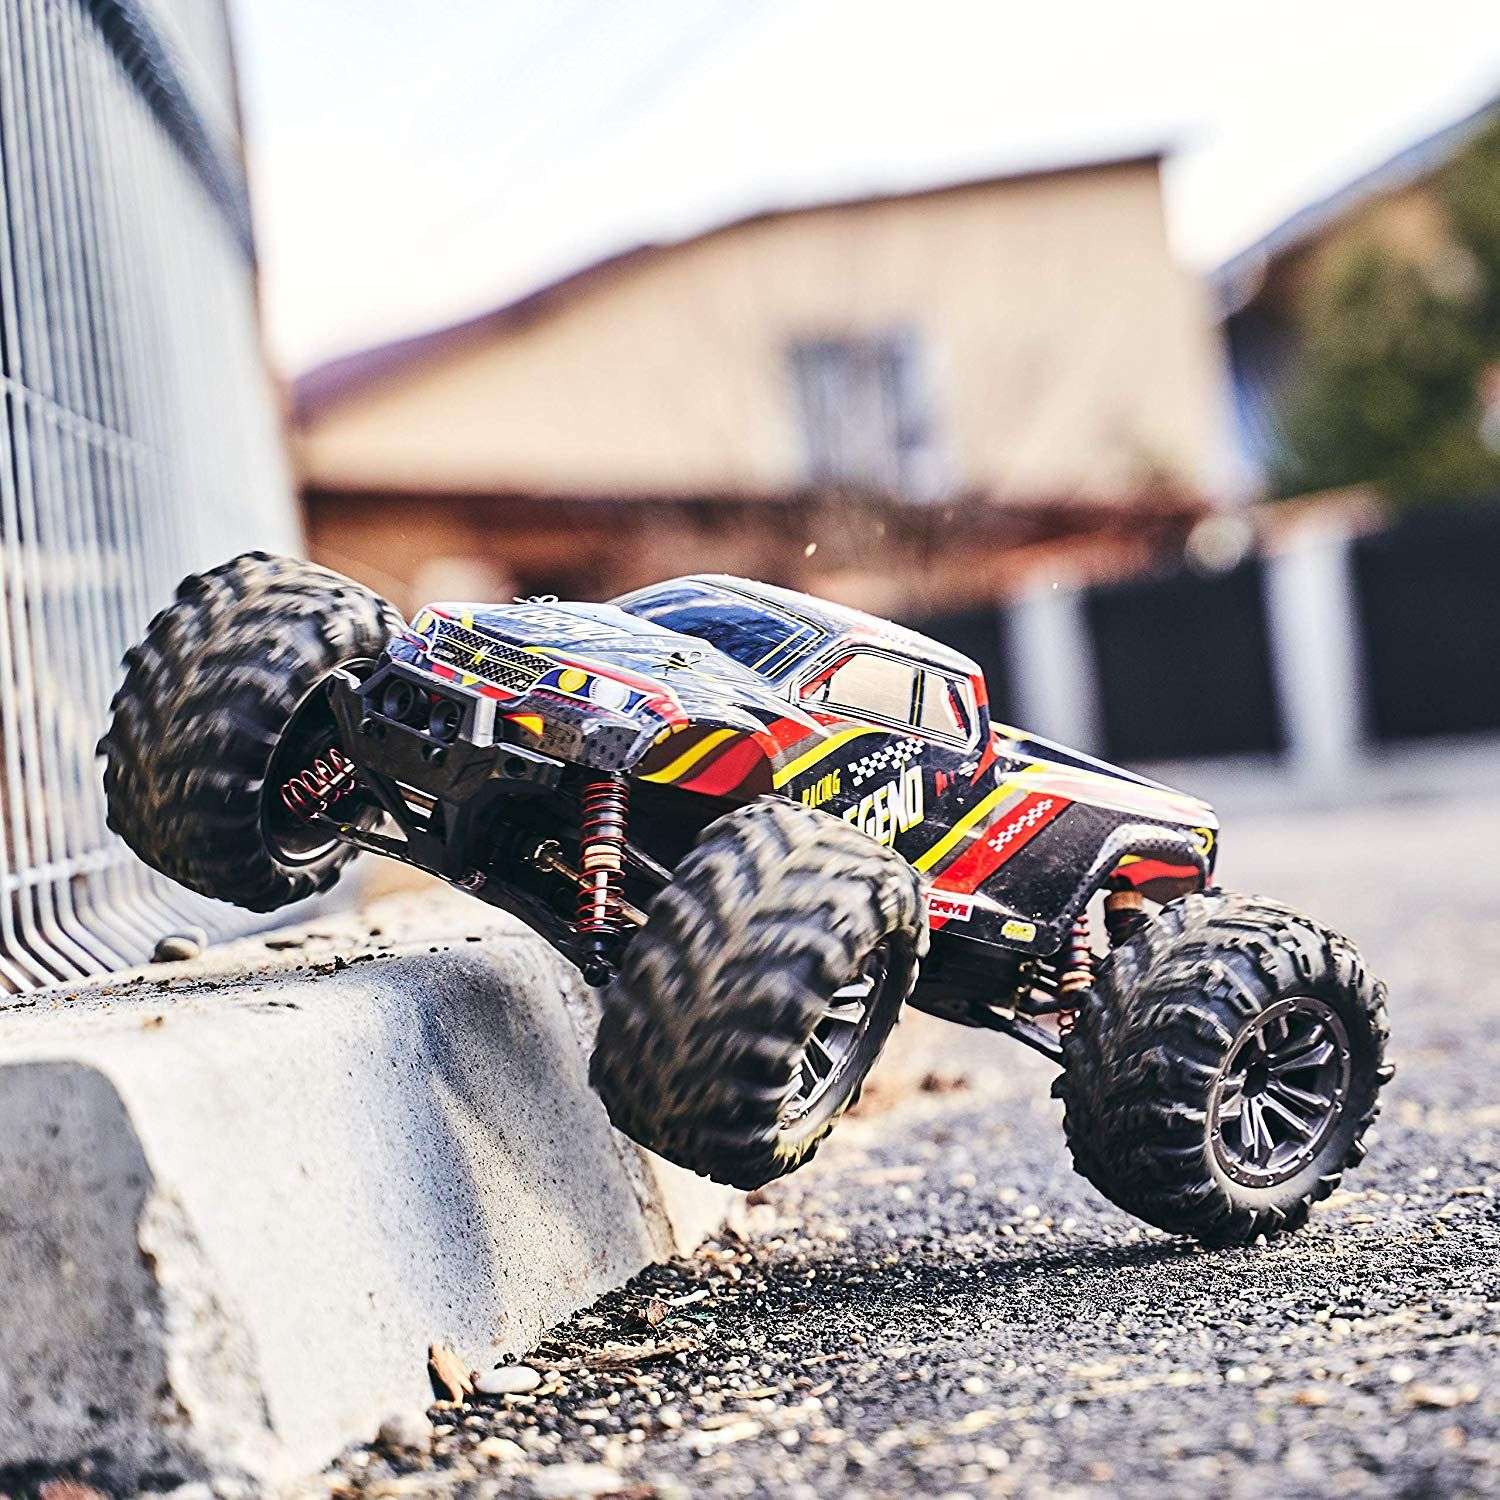 110 Scale Large RC Cars 48+ kmh Speed Boys Remote